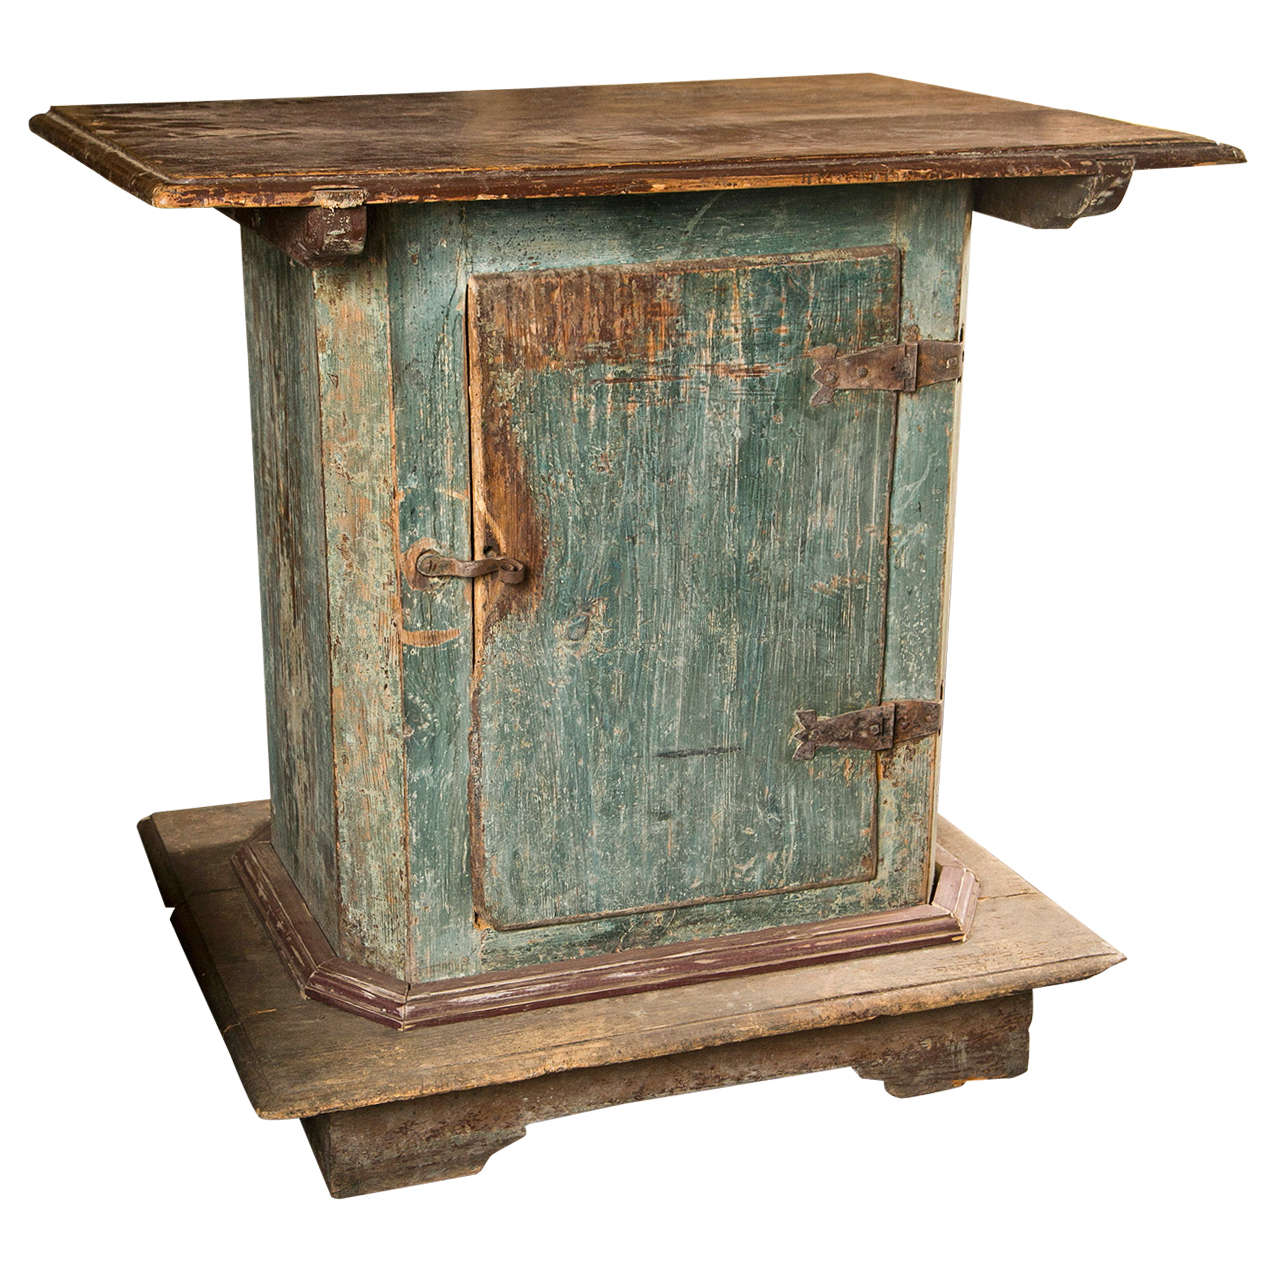 Swedish Painted Pedestal Cabinet with One Door in Original Paint Finish, c. 1780 For Sale